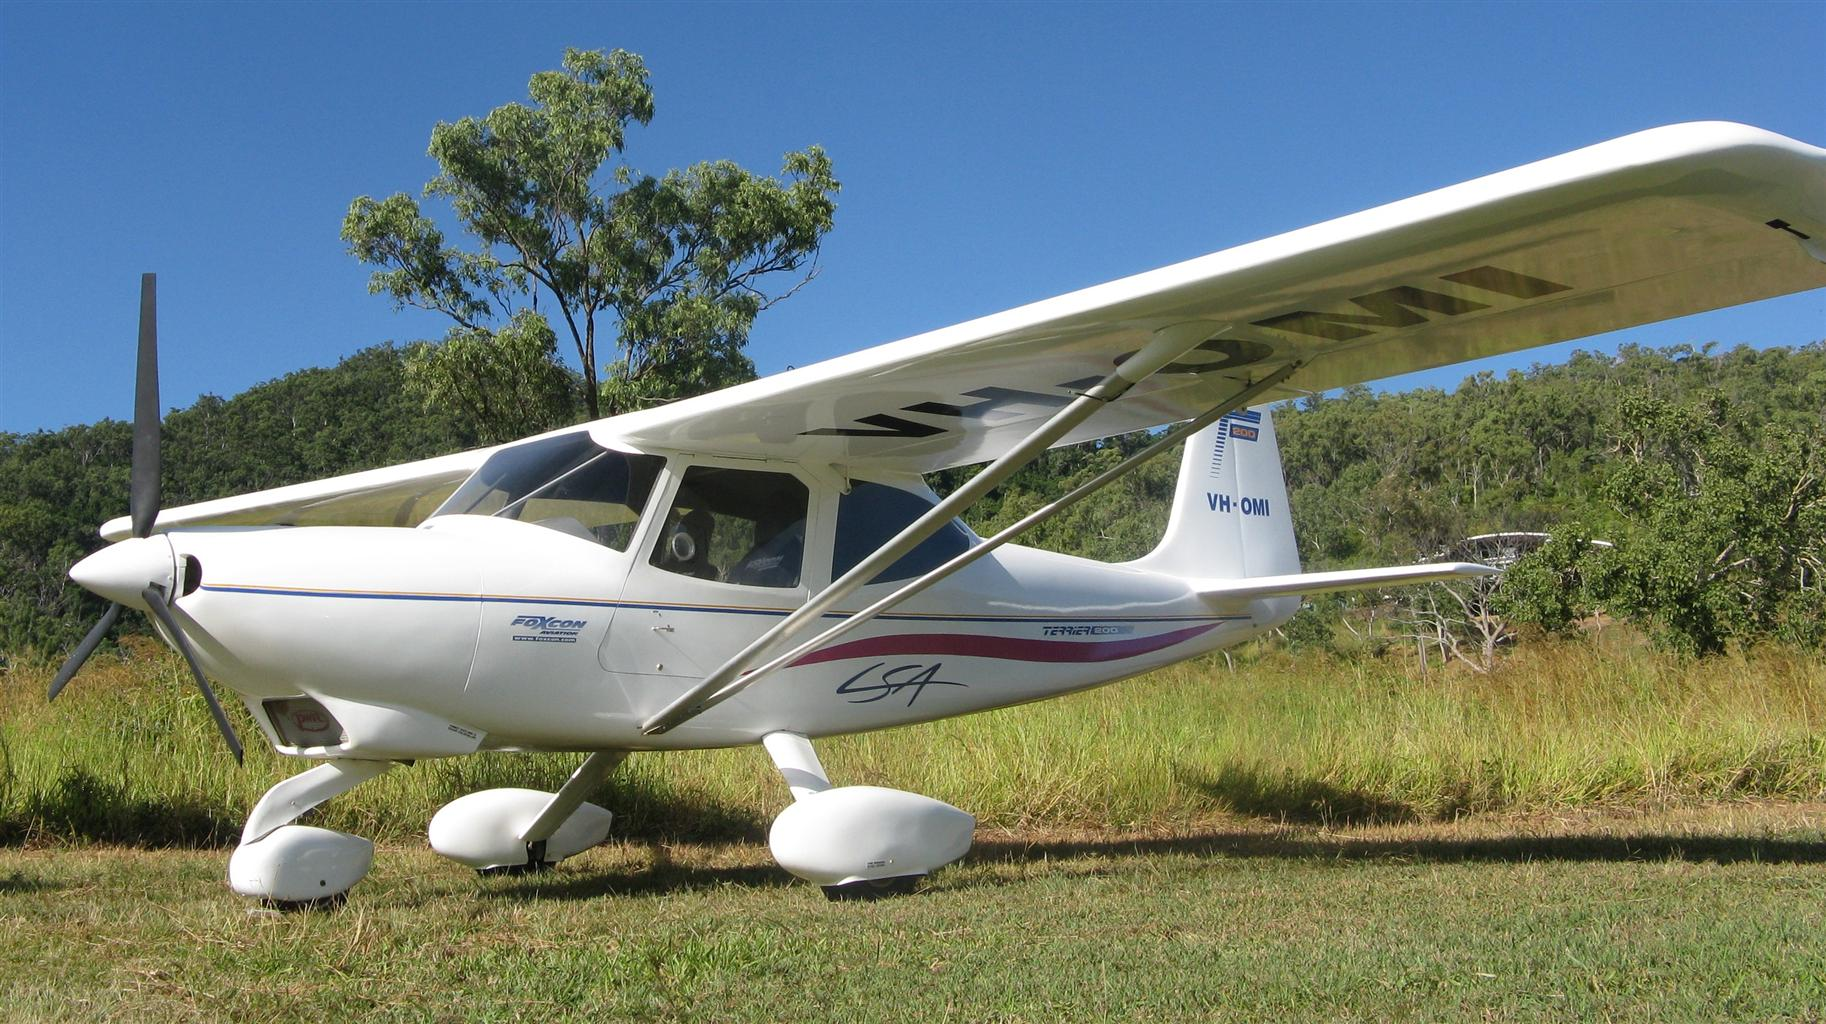 Foxcon aircraft for sale for Aircraft motors for sale